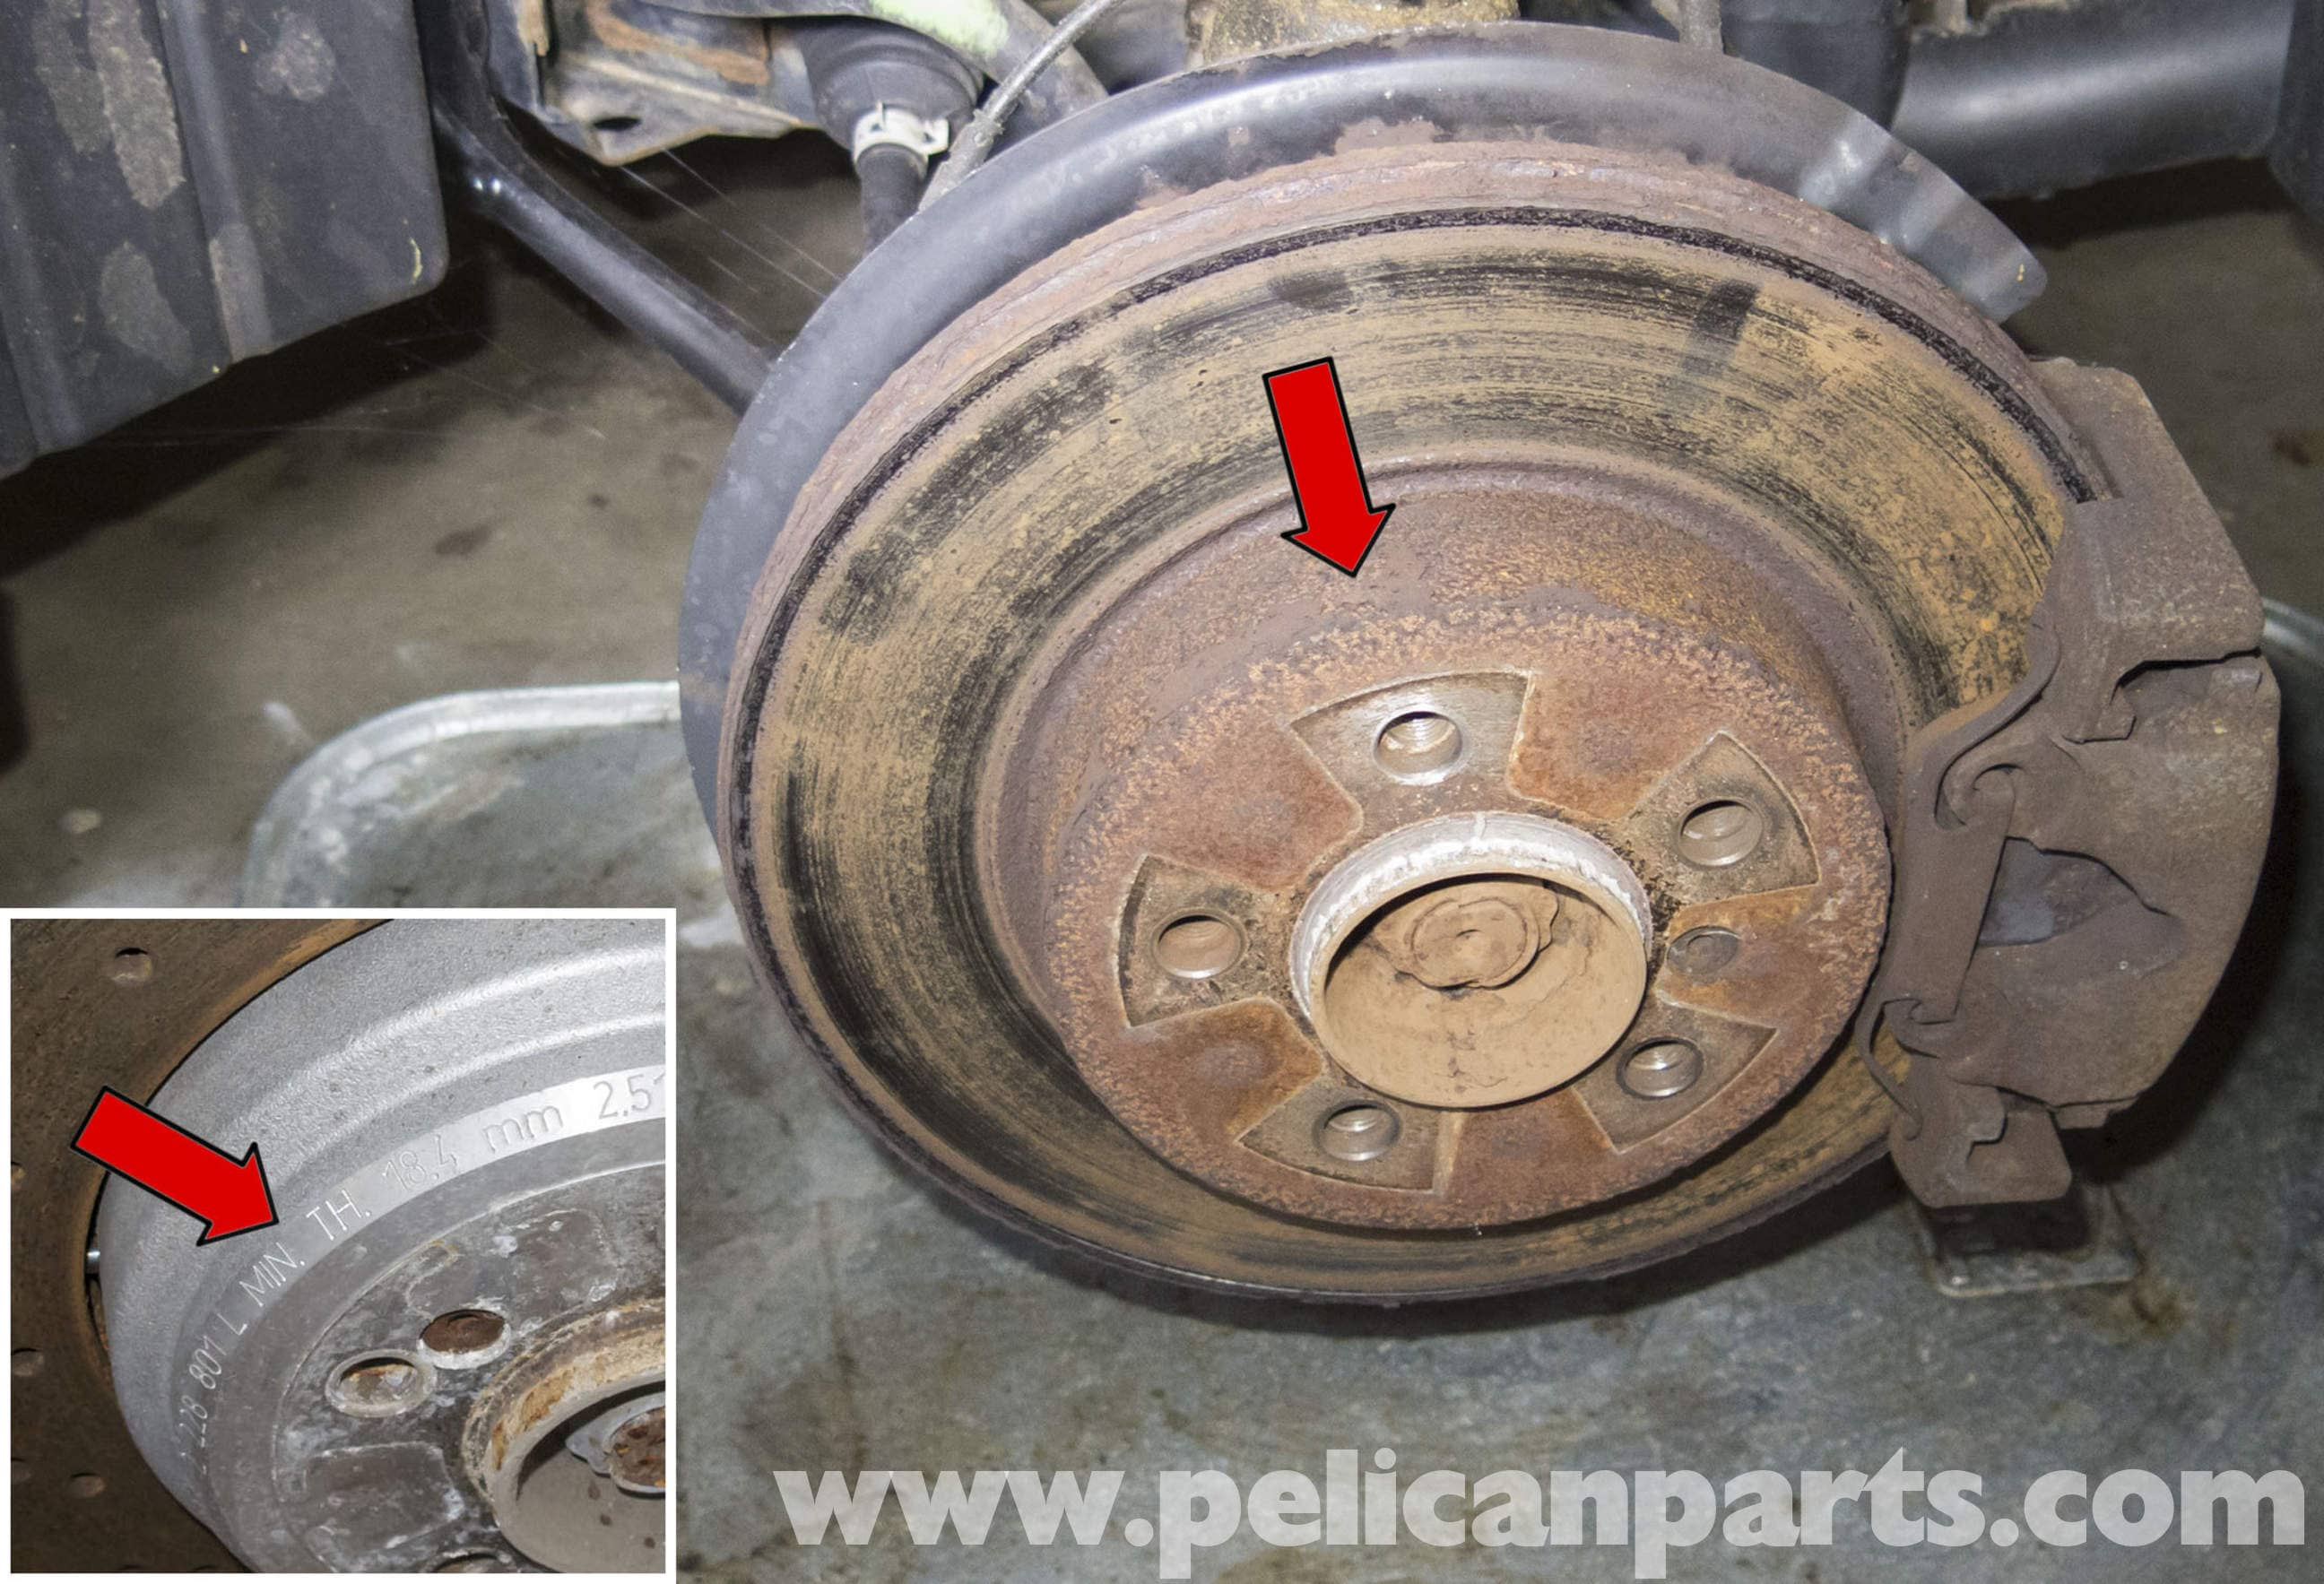 Minimum Thickness For Brake Pads : Pelican technical article bmw brake rotor